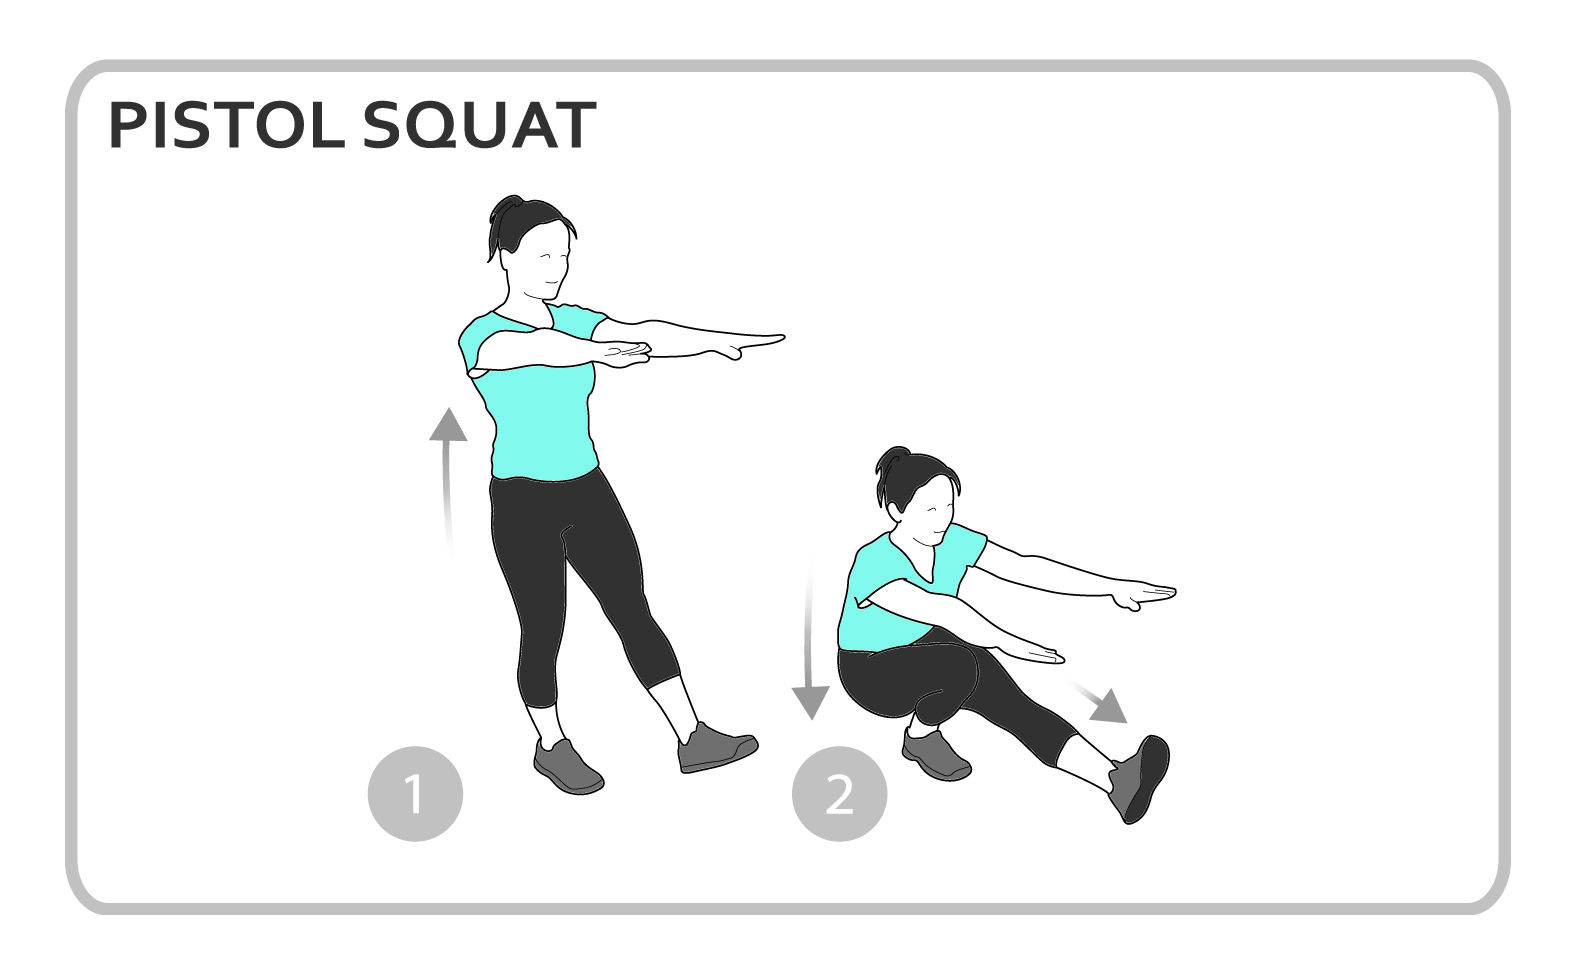 Pistol Squat Exercise Diagram Lower Body Personal